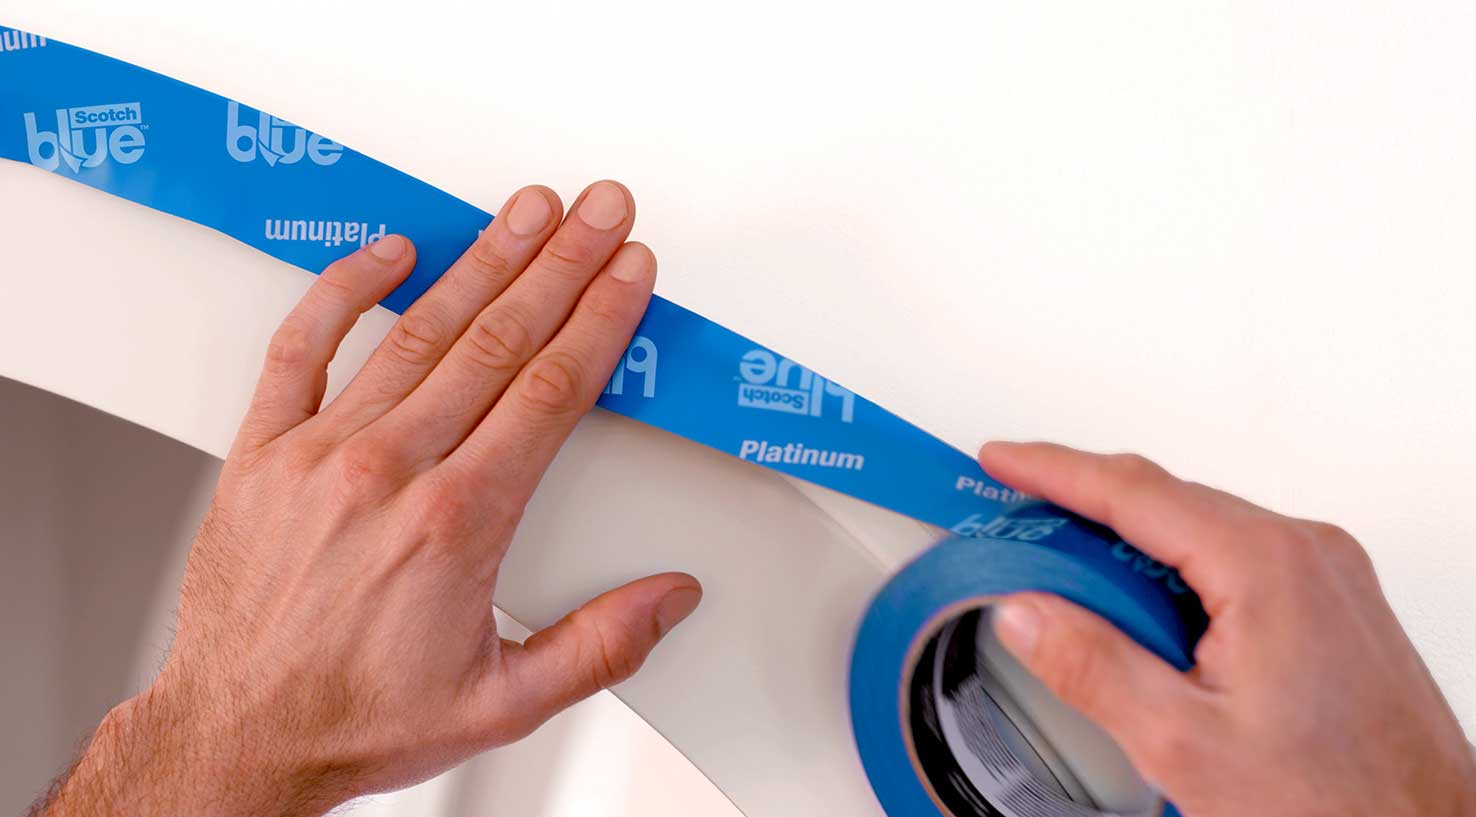 Painters tape being applied to a curved entry